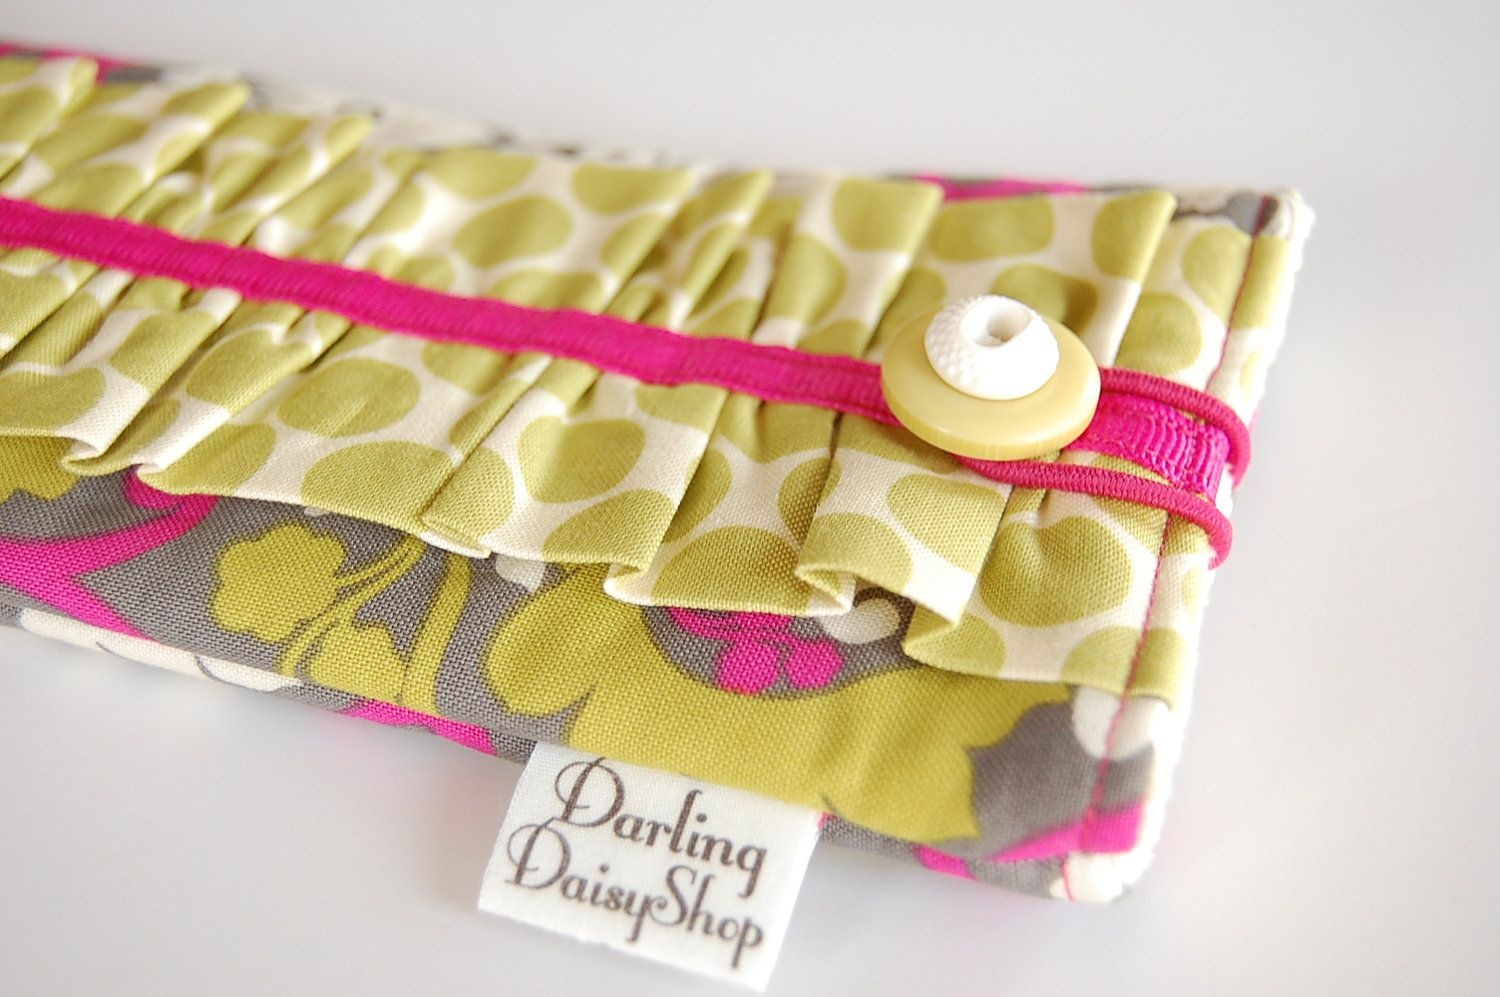 Handmade Fabric Sunglasses Eyeglasses case - Pickled Pink Damask with Celery Dots - Ready to Ship